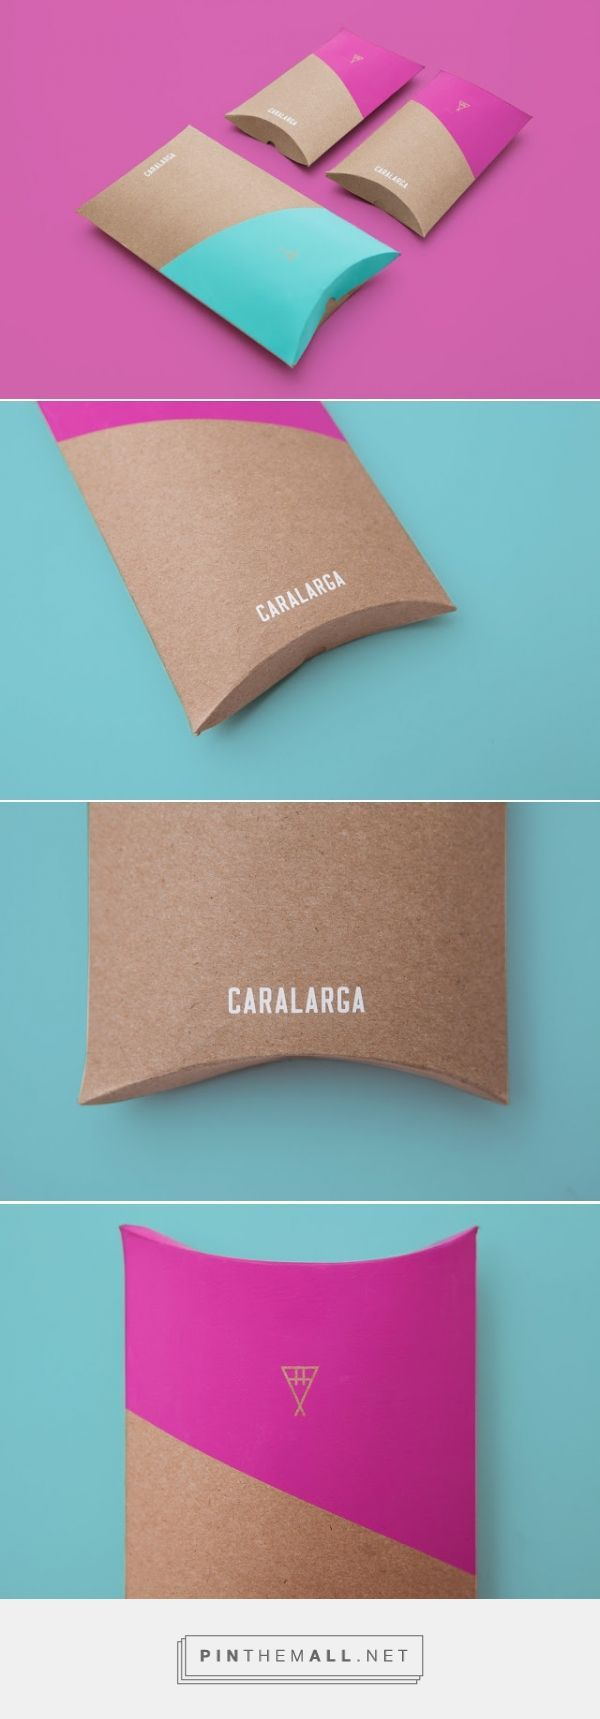 CARALARGA Jewelry Packaging designed by Sociedad Anónima​ - http://www.packagingoftheworld.com/2015/12/caralarga.html... - a grouped images picture